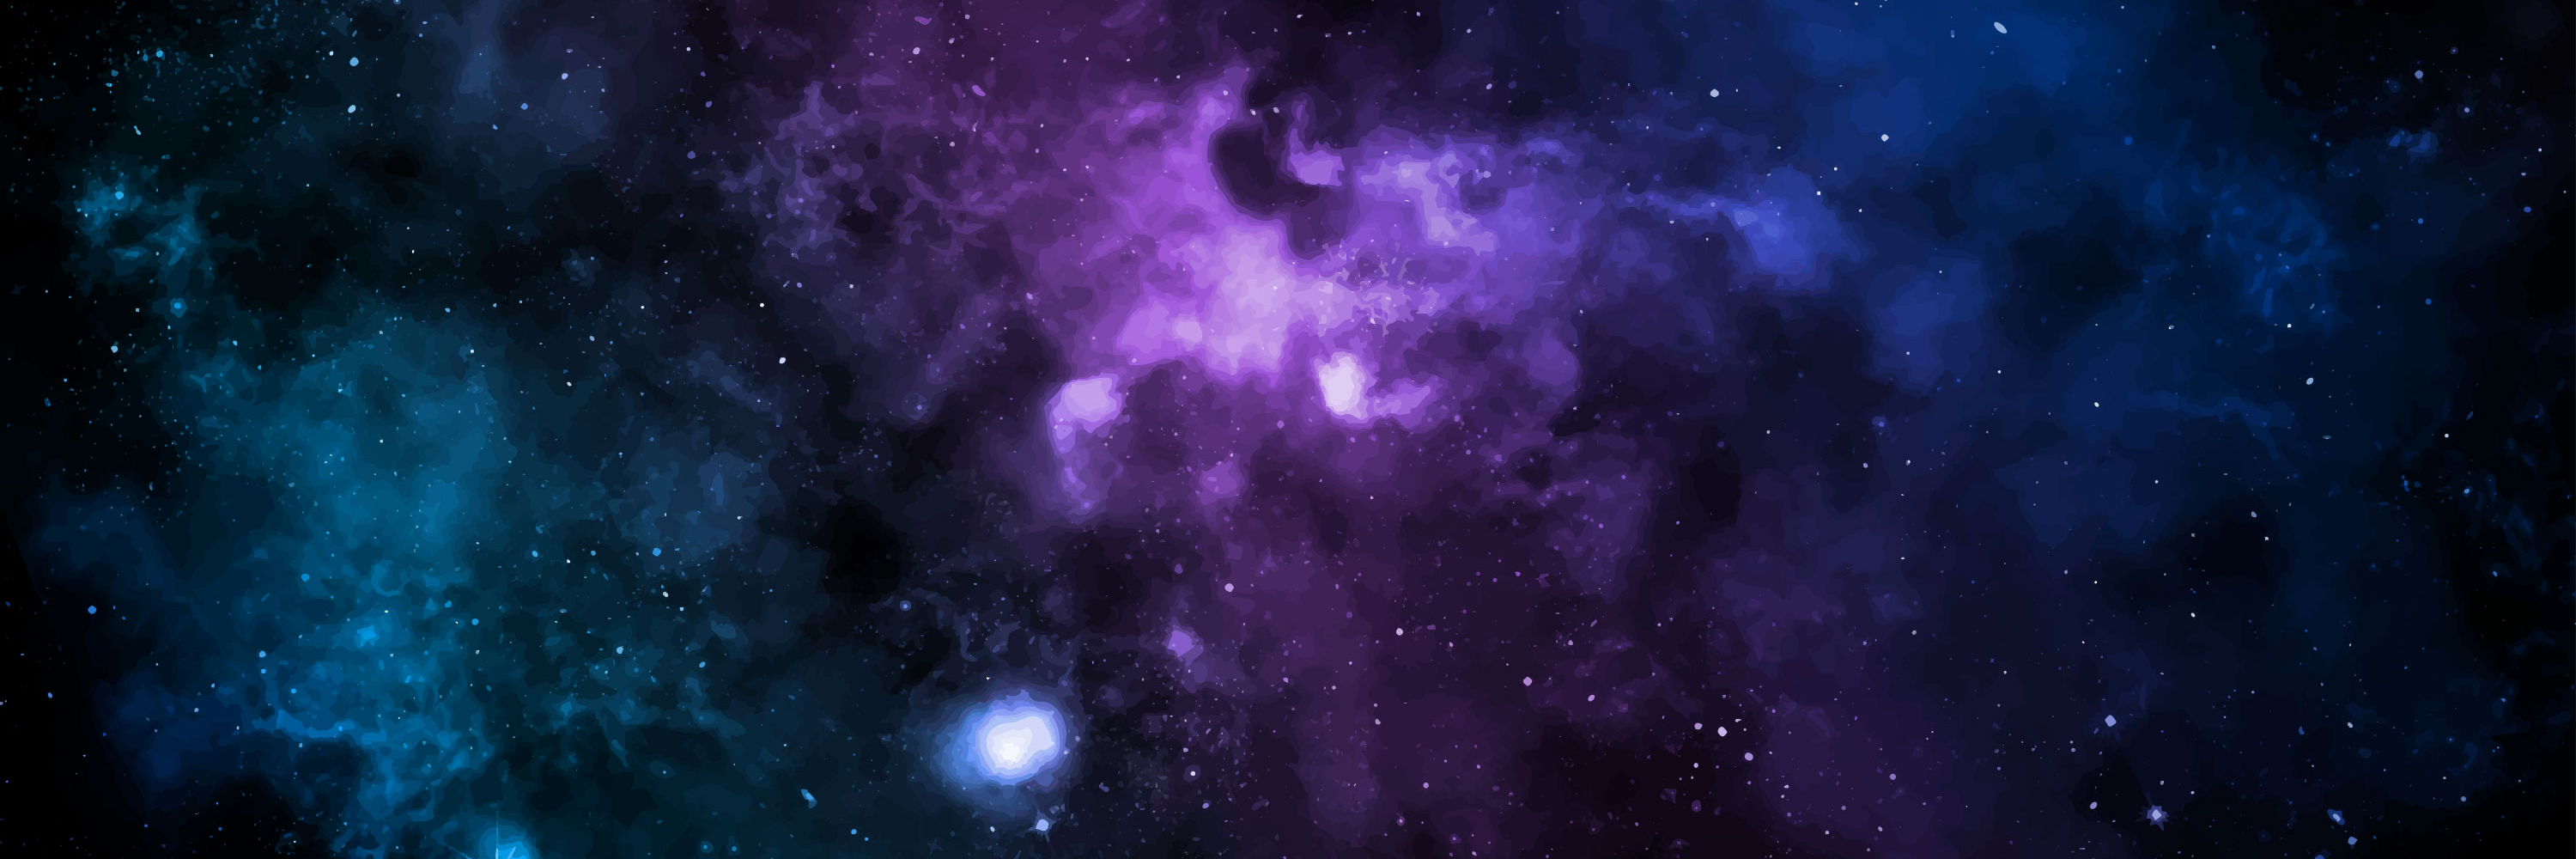 cmd/web-app/static/images/example-image-resize-galaxy-3000x1000.png